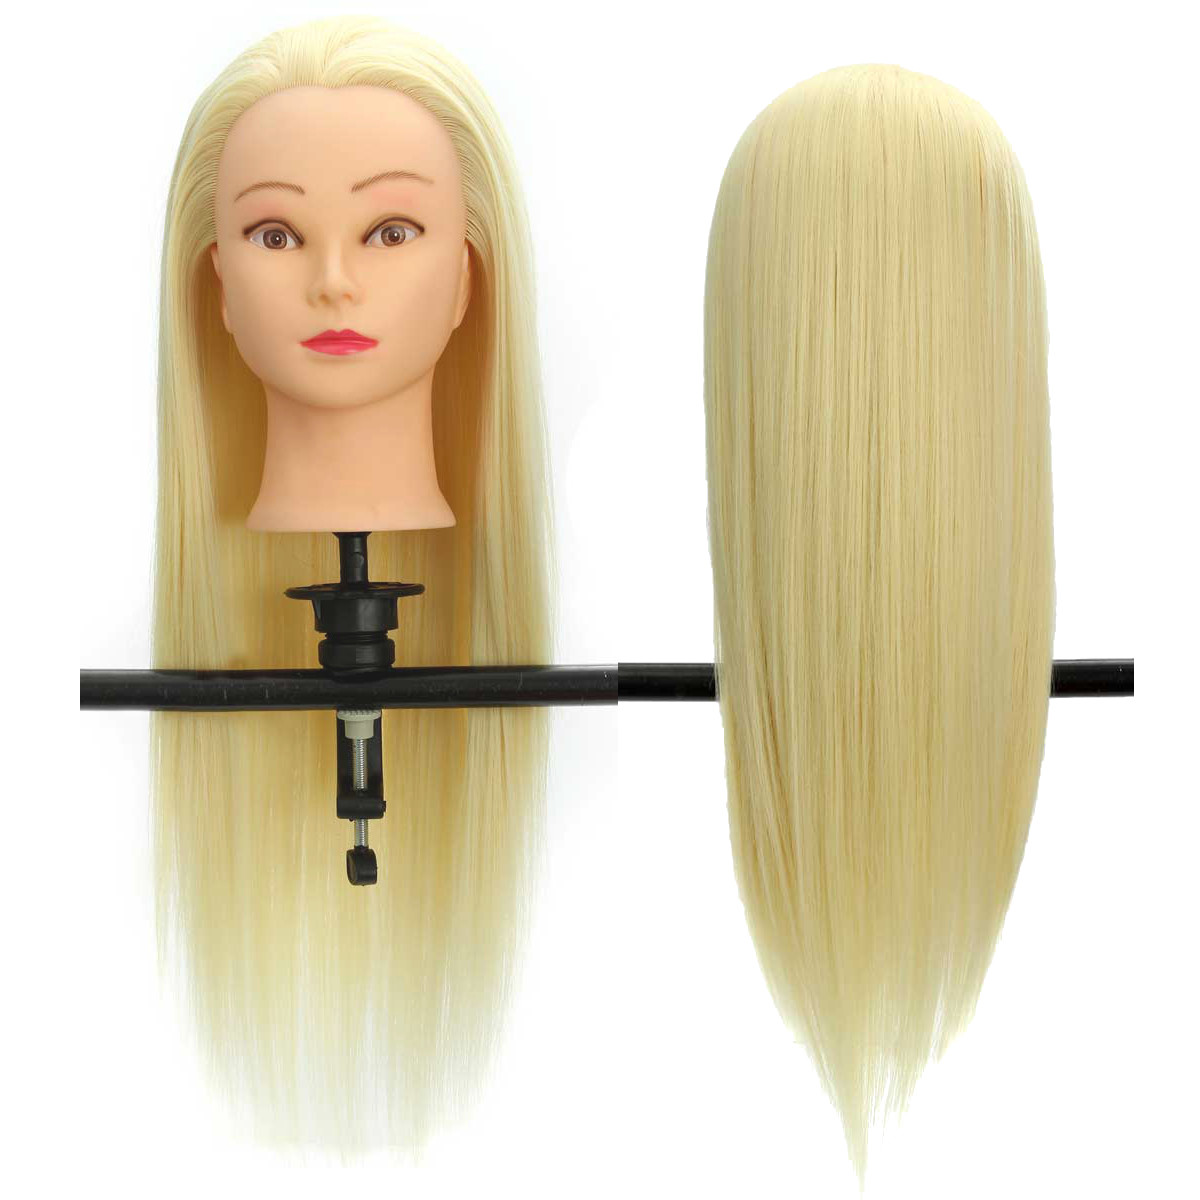 "22"" 30% Real Hair Hairdressing Training Practice Head With Hair Salon Mannequin +Clamp"